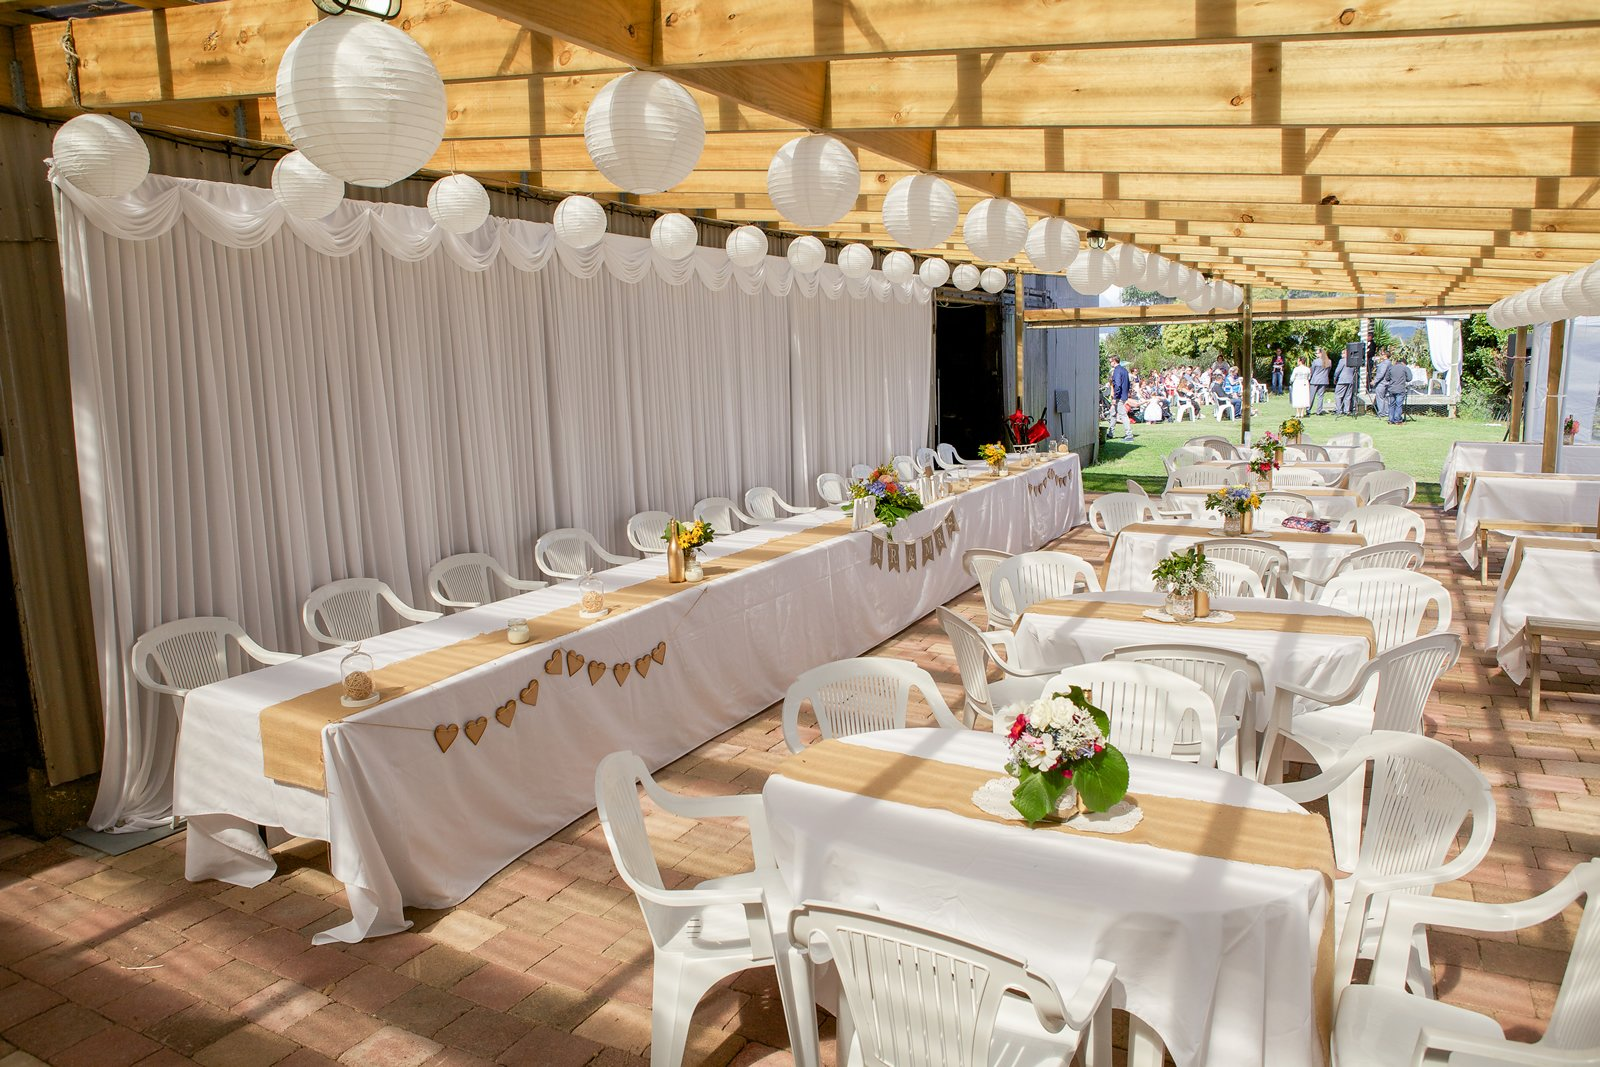 Indoor or outdoor seating arrangements